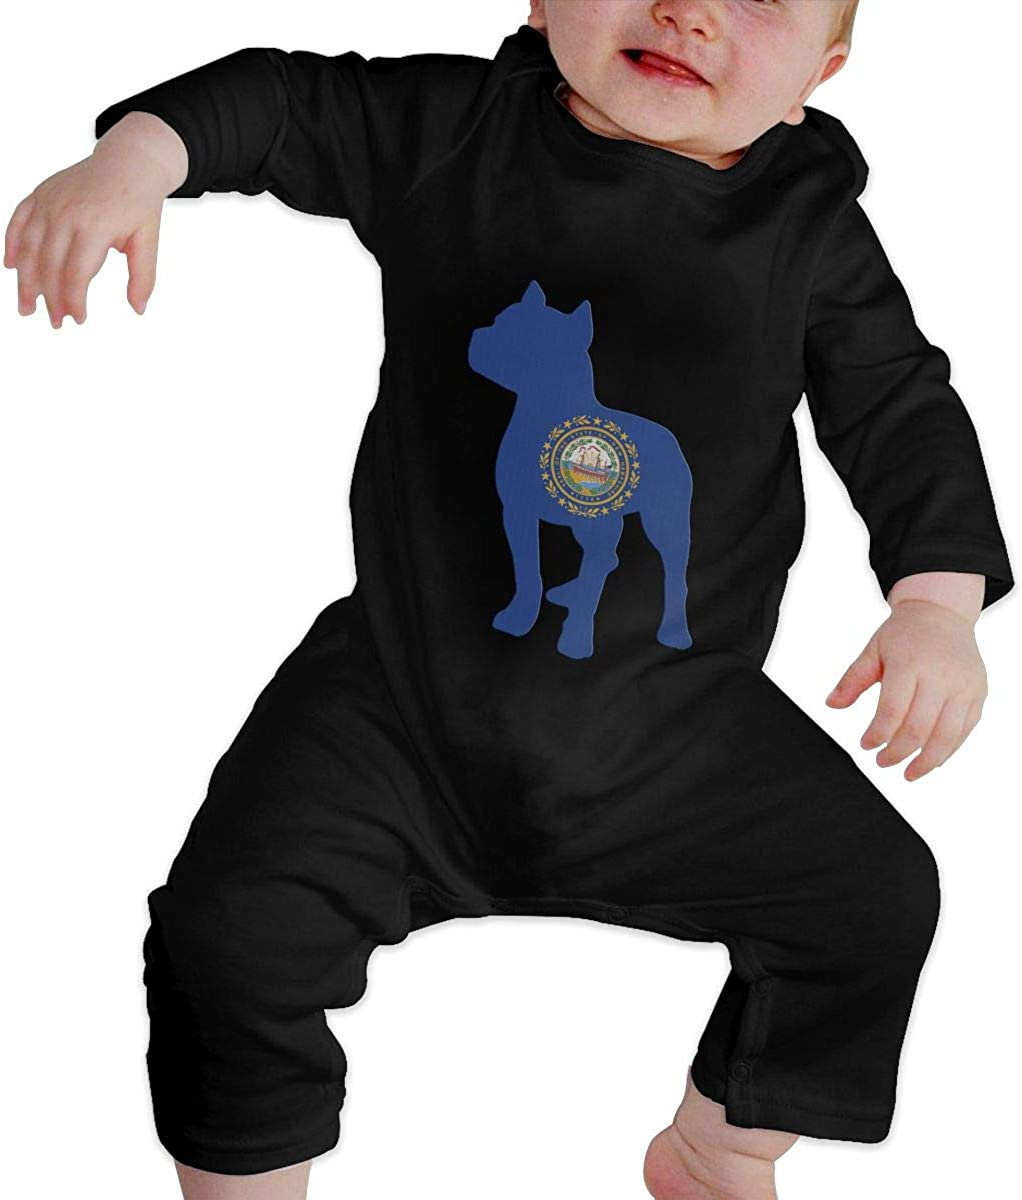 YELTY6F Patriotic Pitbull New Hampshire State Flag Printed Baby Boys Girls One-Piece Suit Long Sleeve Romper Black